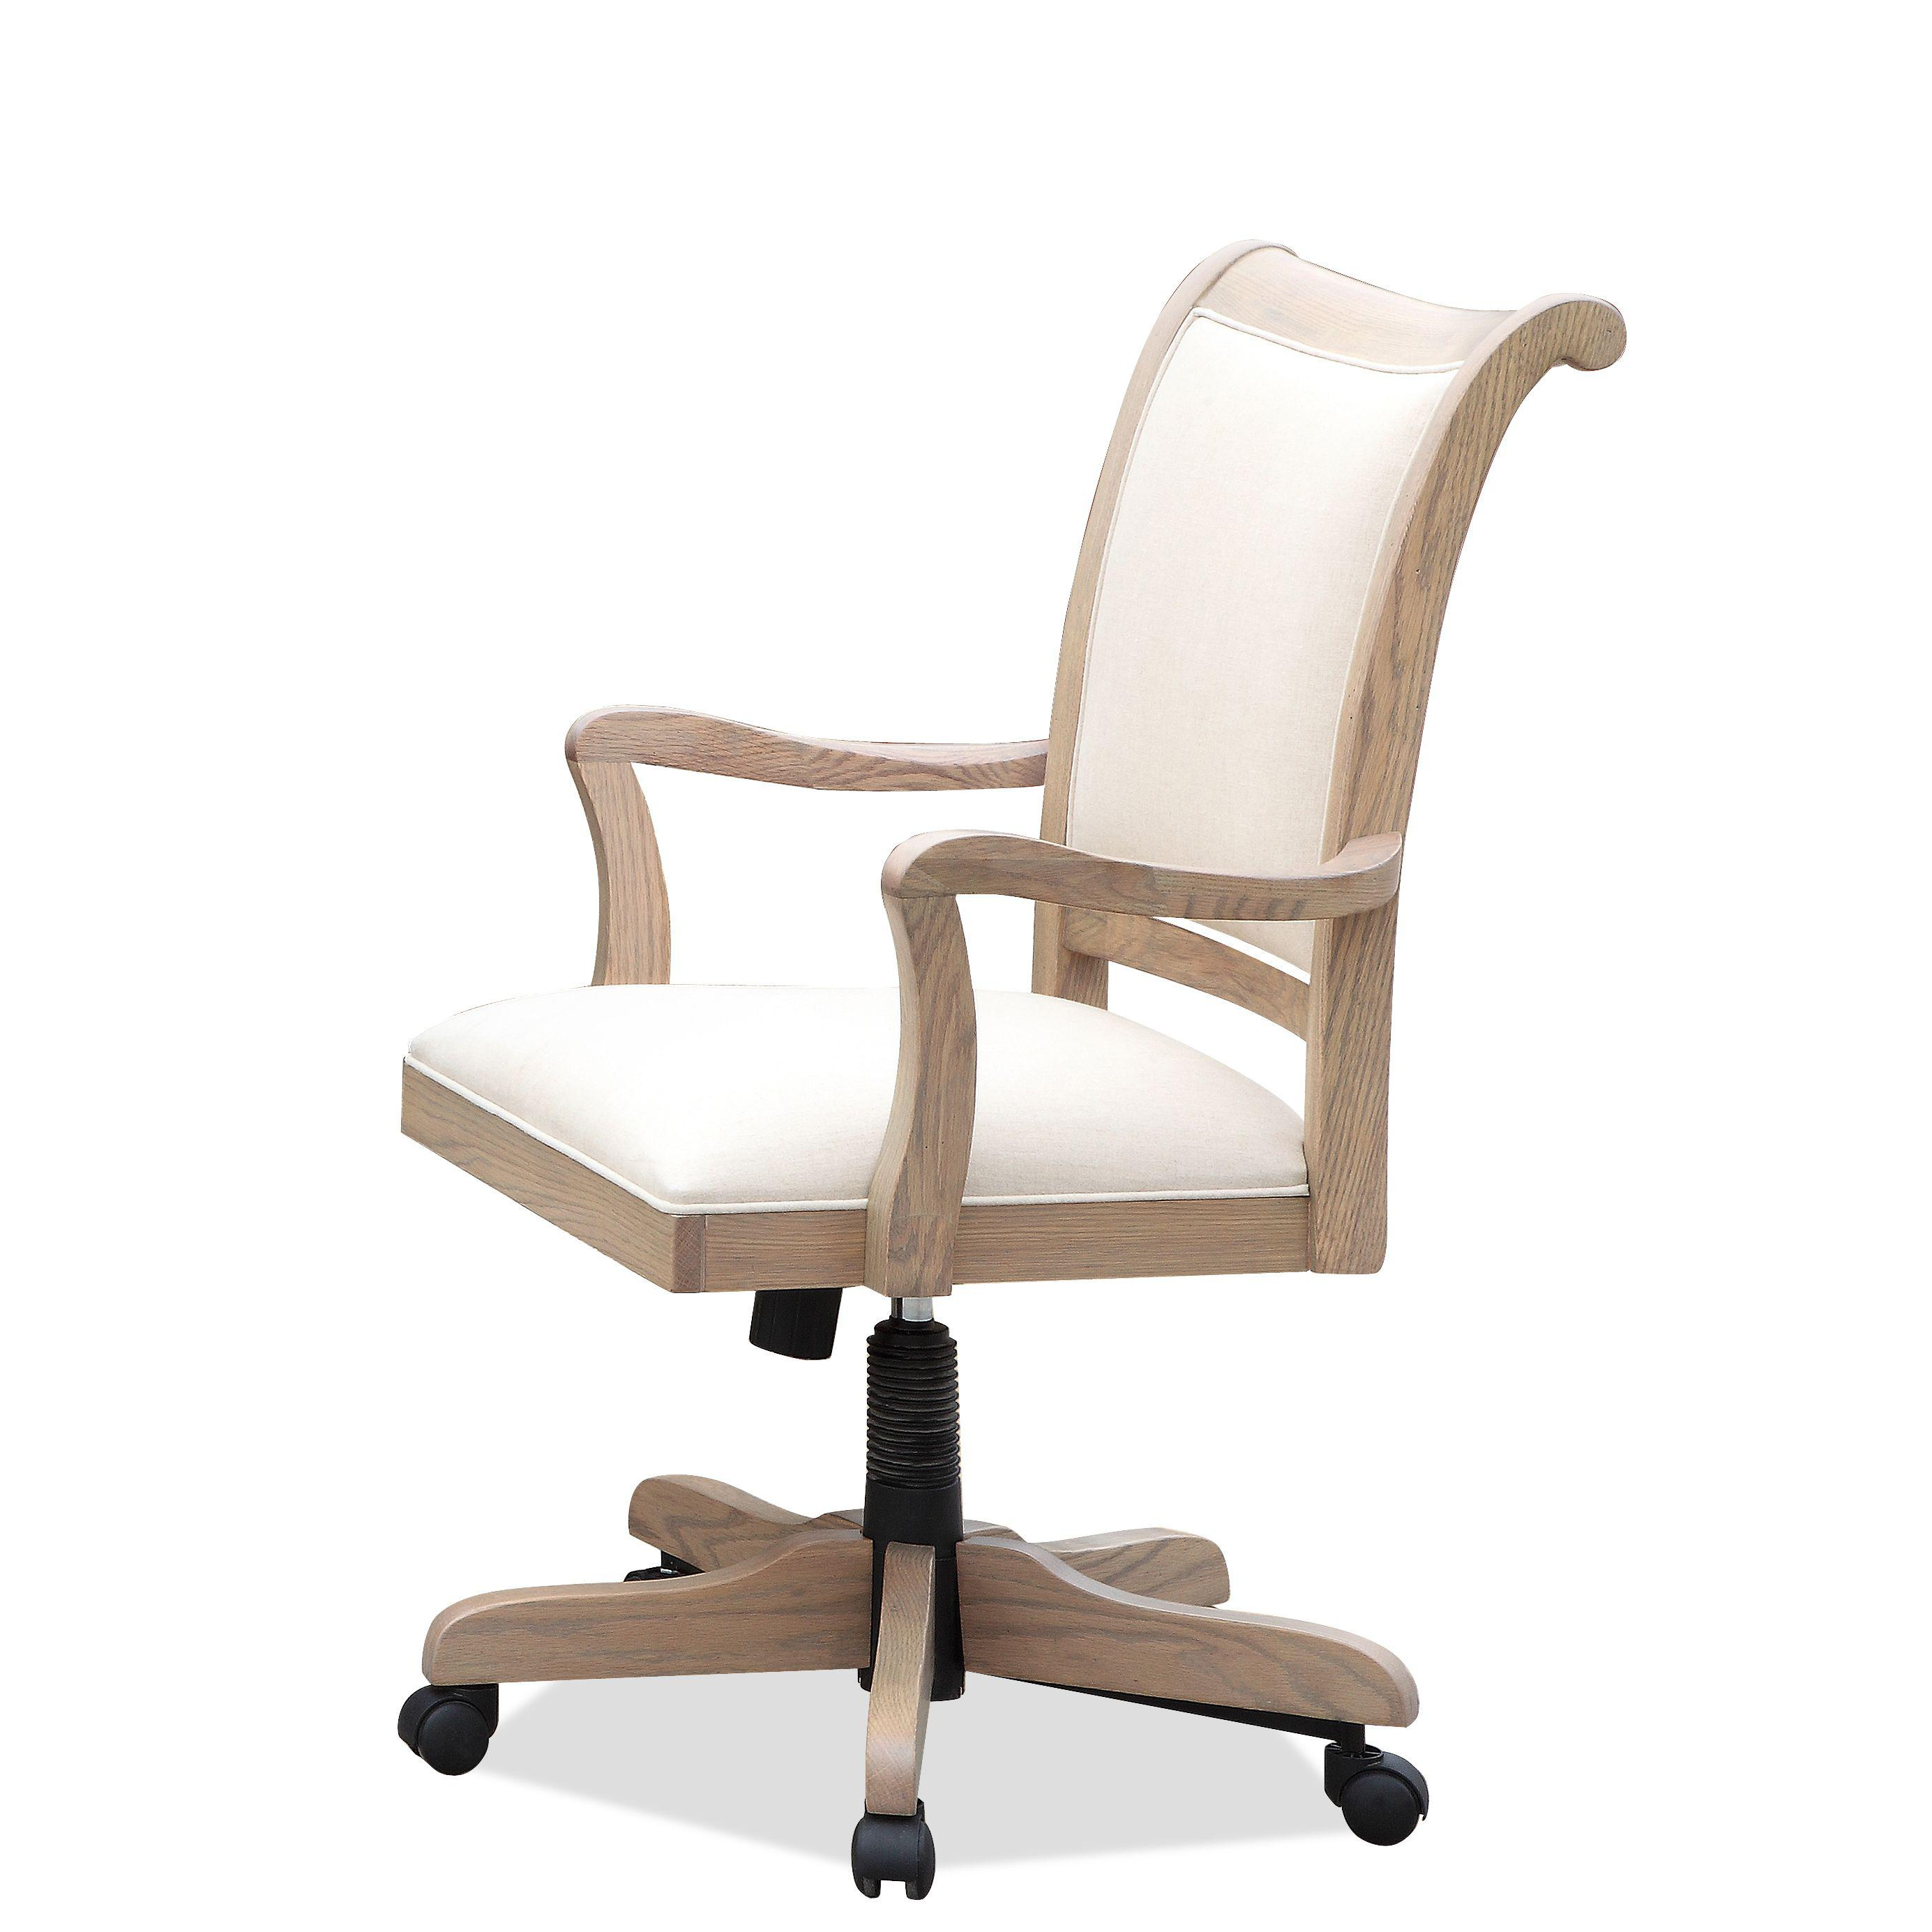 Riverside Furniture Coventry Desk Chair - Item Number: 32438